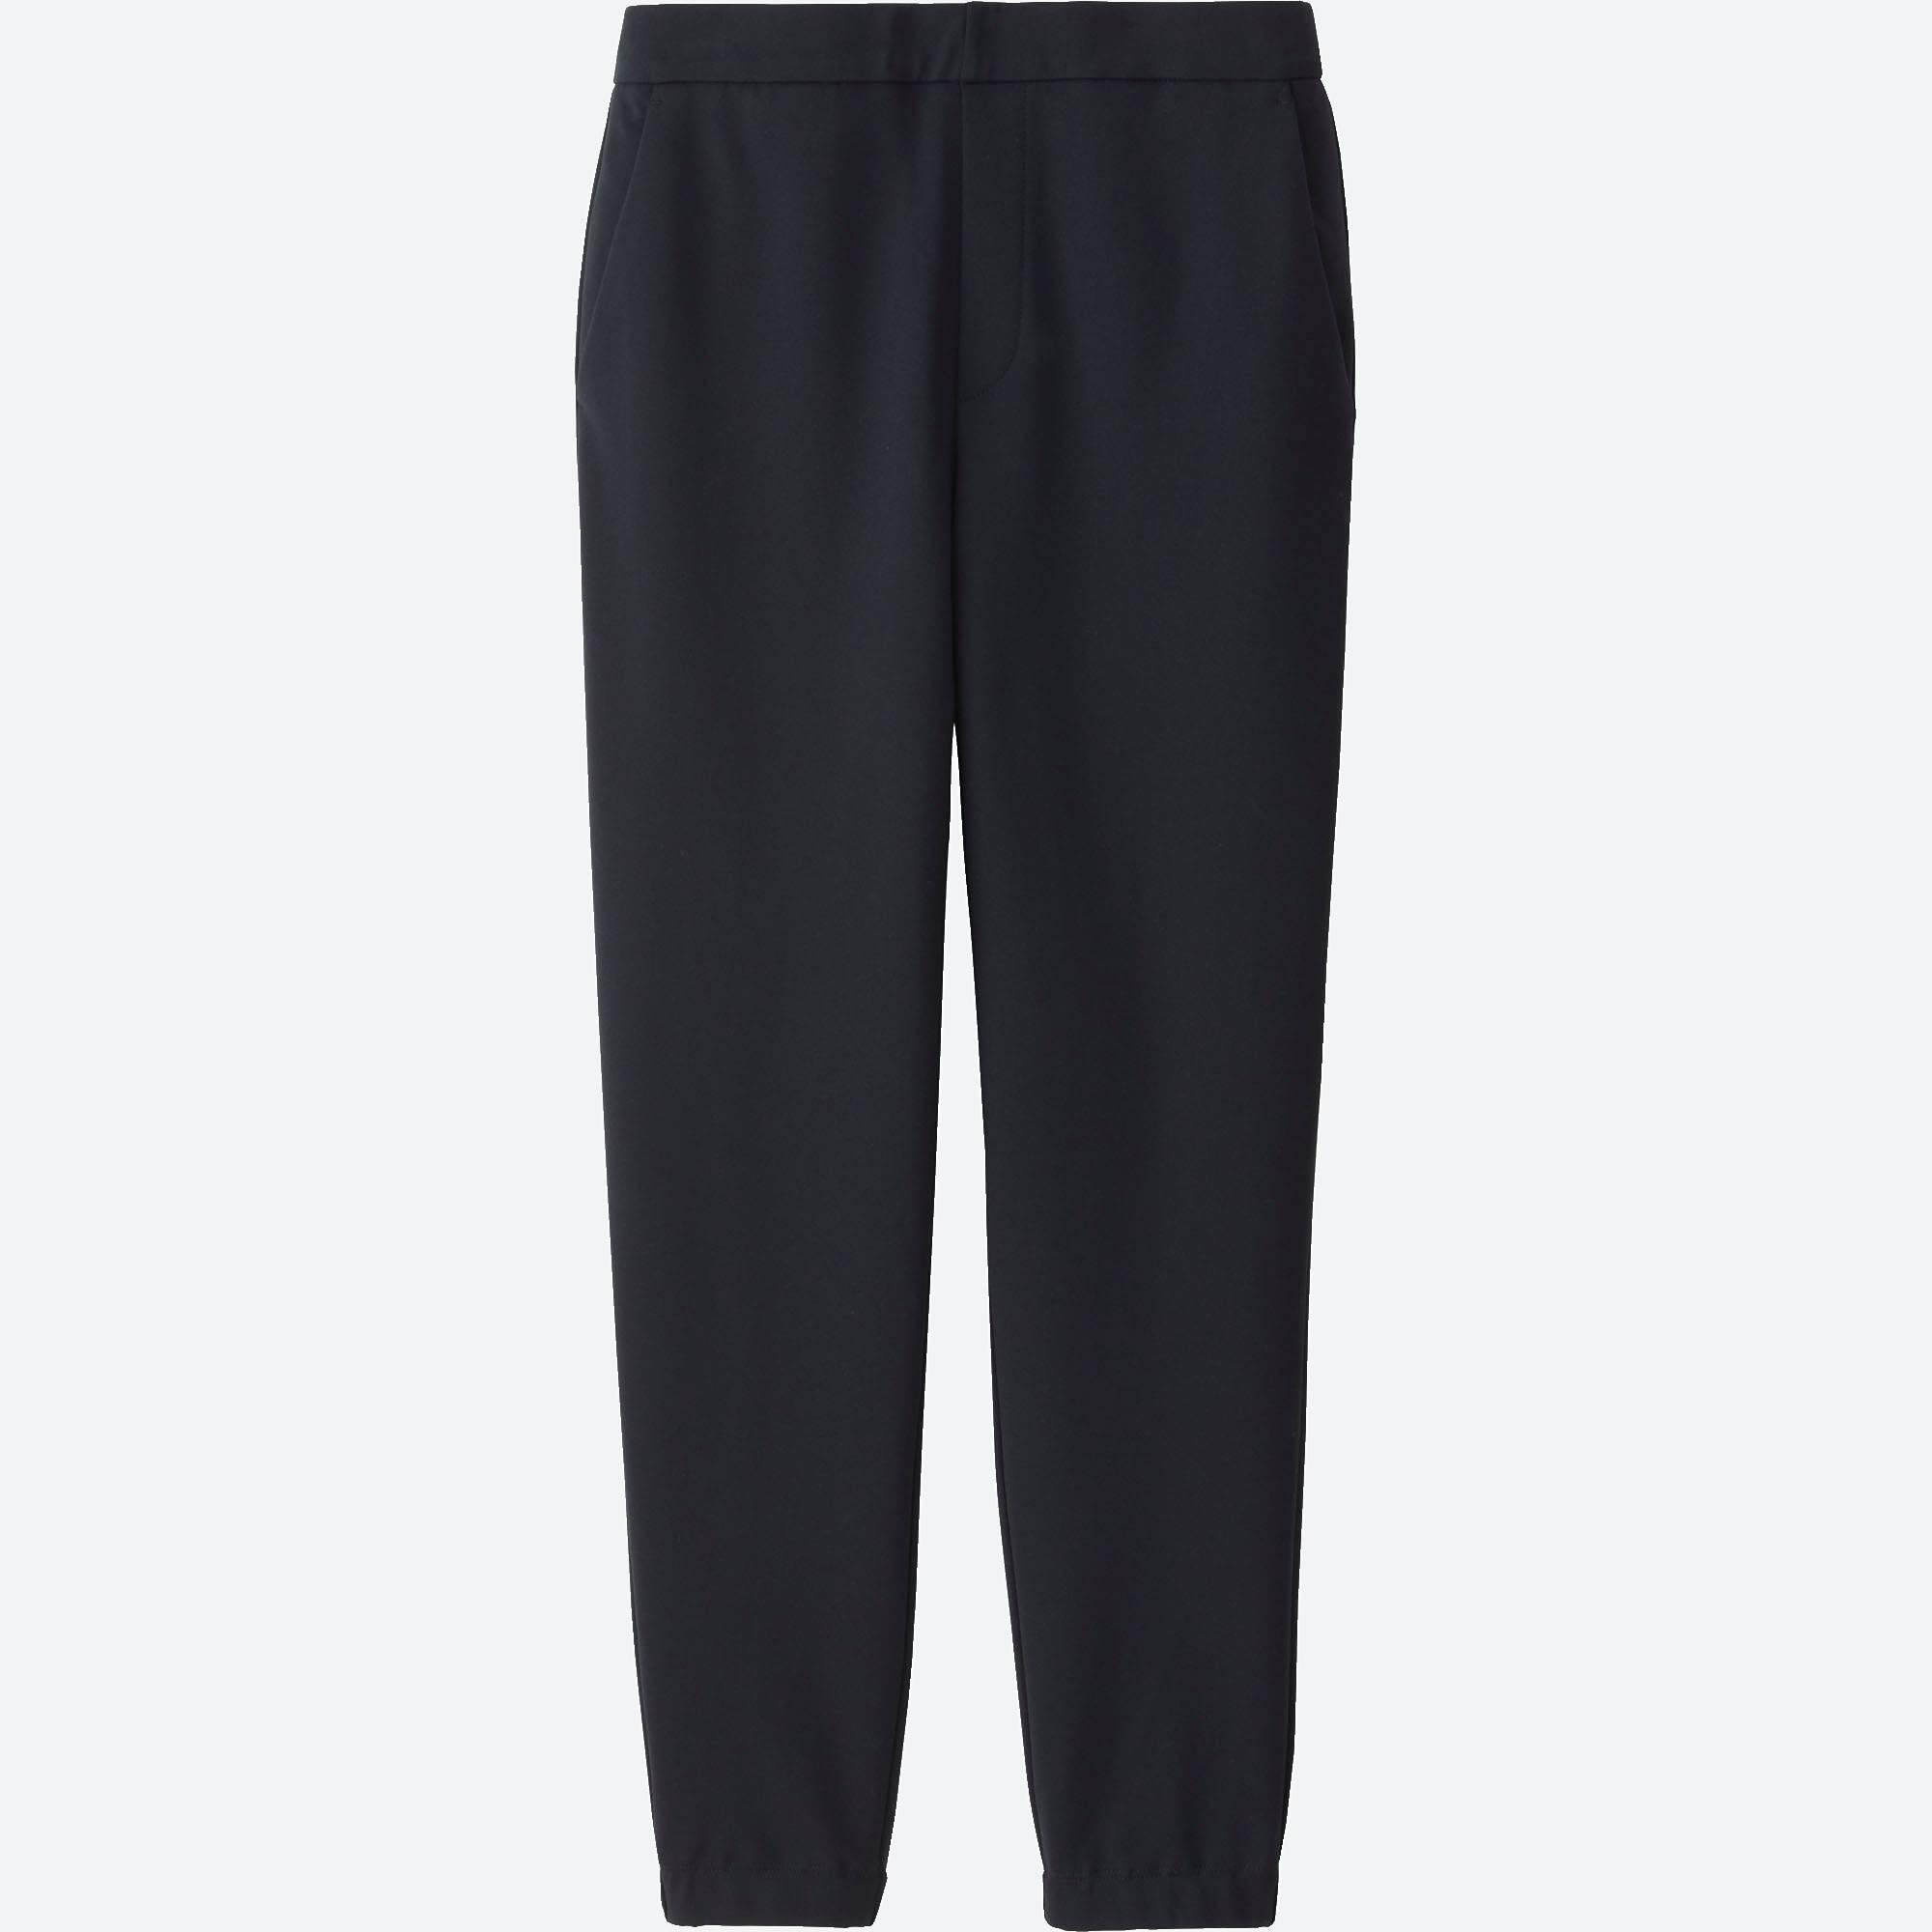 Luxury Uniqlo Offers Its Uniqlo Womens Dry Stretch Jogger Pants In Several Colors Navy Pictured For $1990 With Free Shipping Thats A Savings Of $25 And The Lowest Price We Could Find Theyre Available In Sizes S To 3XL Deal Ends June